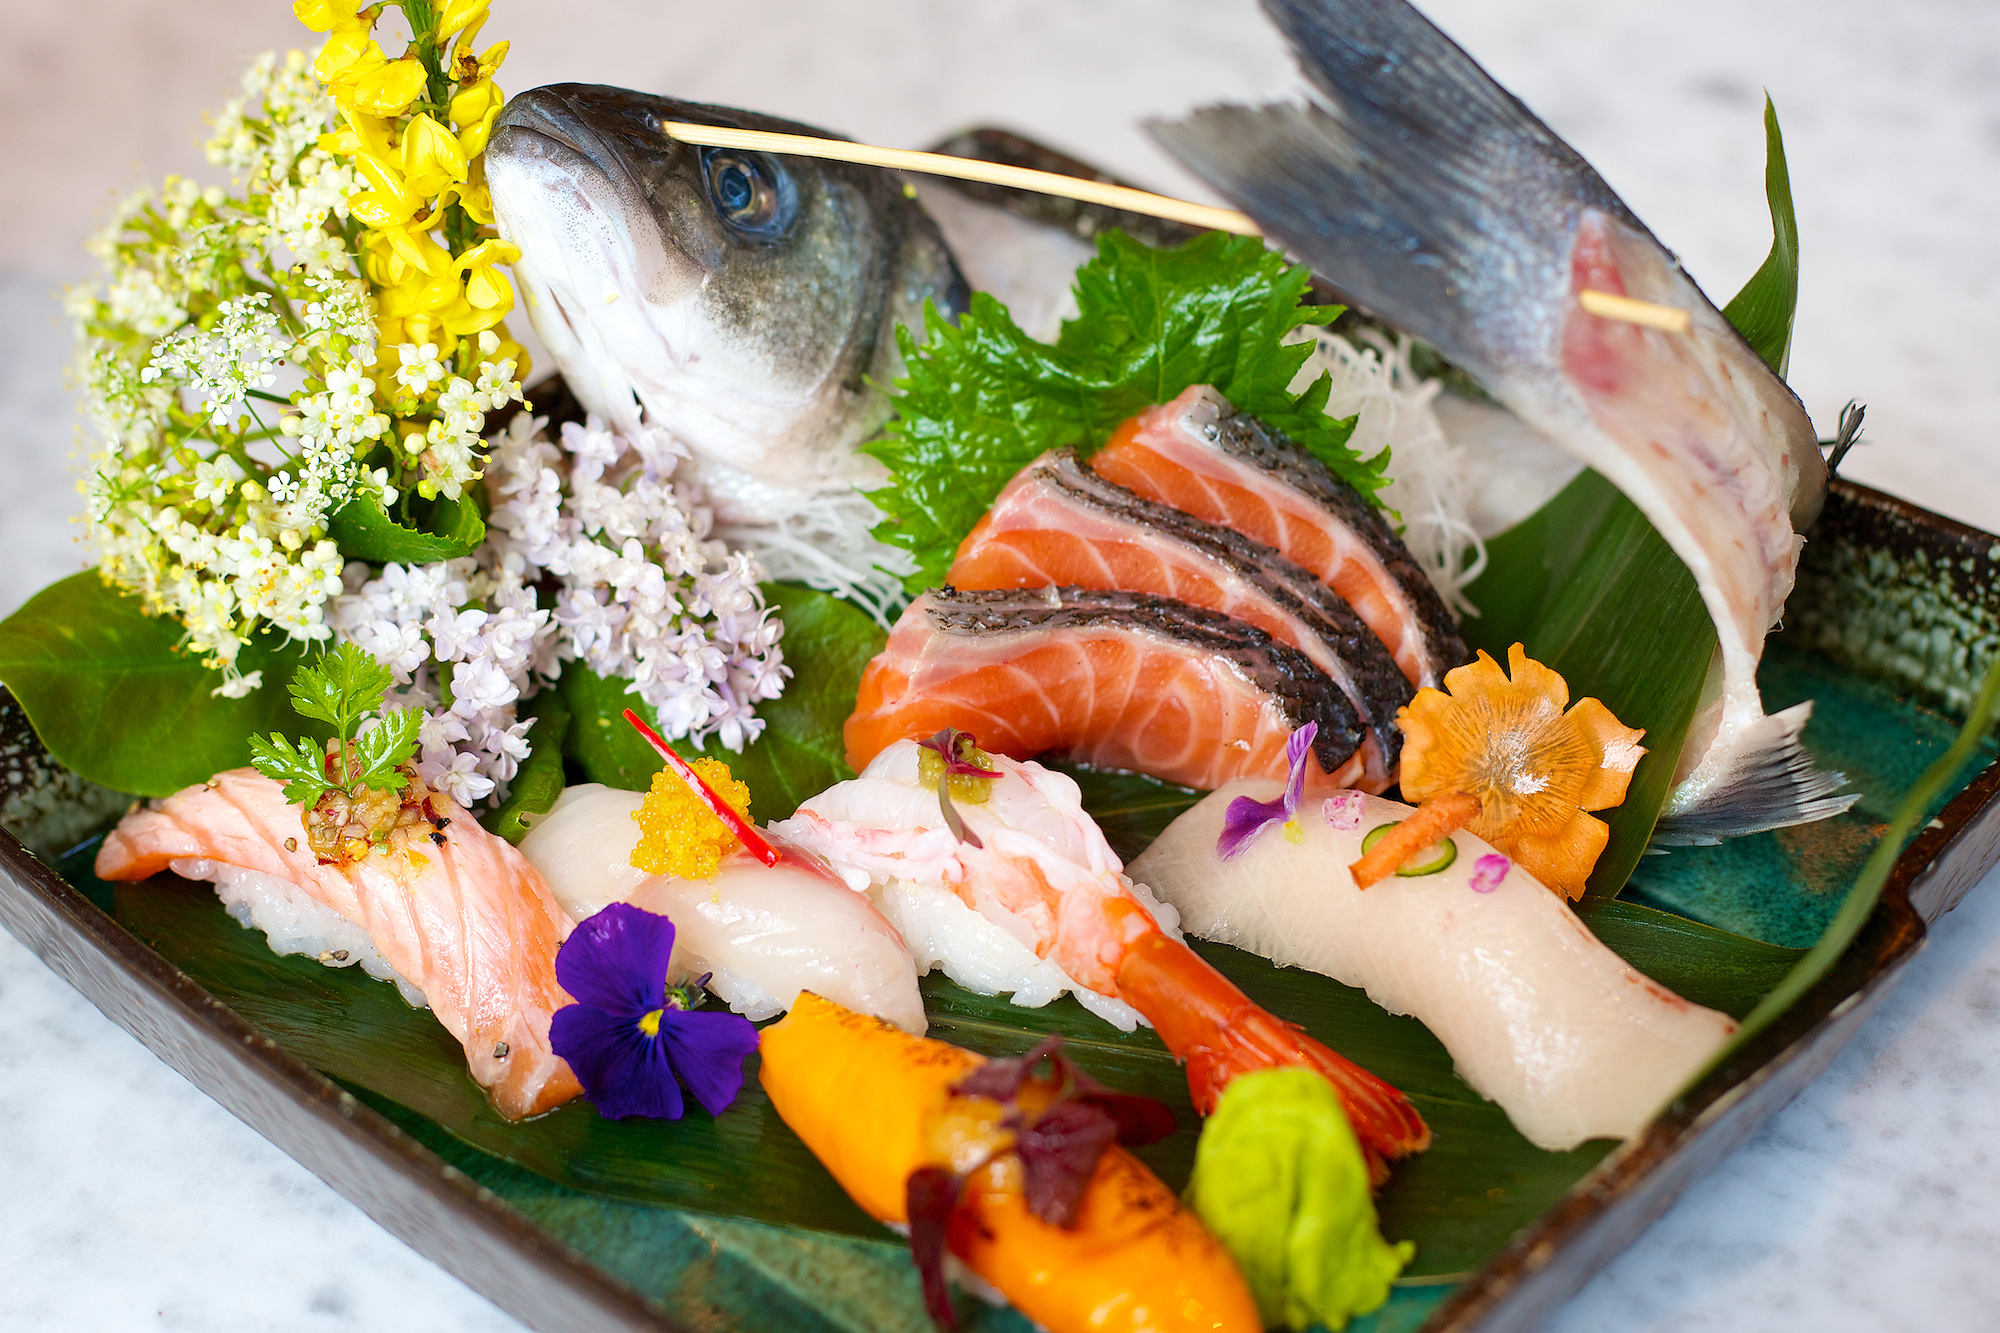 Chotto Matte - Where Peruvian Meets Japanese For A Match Made in Culinary Heaven 8